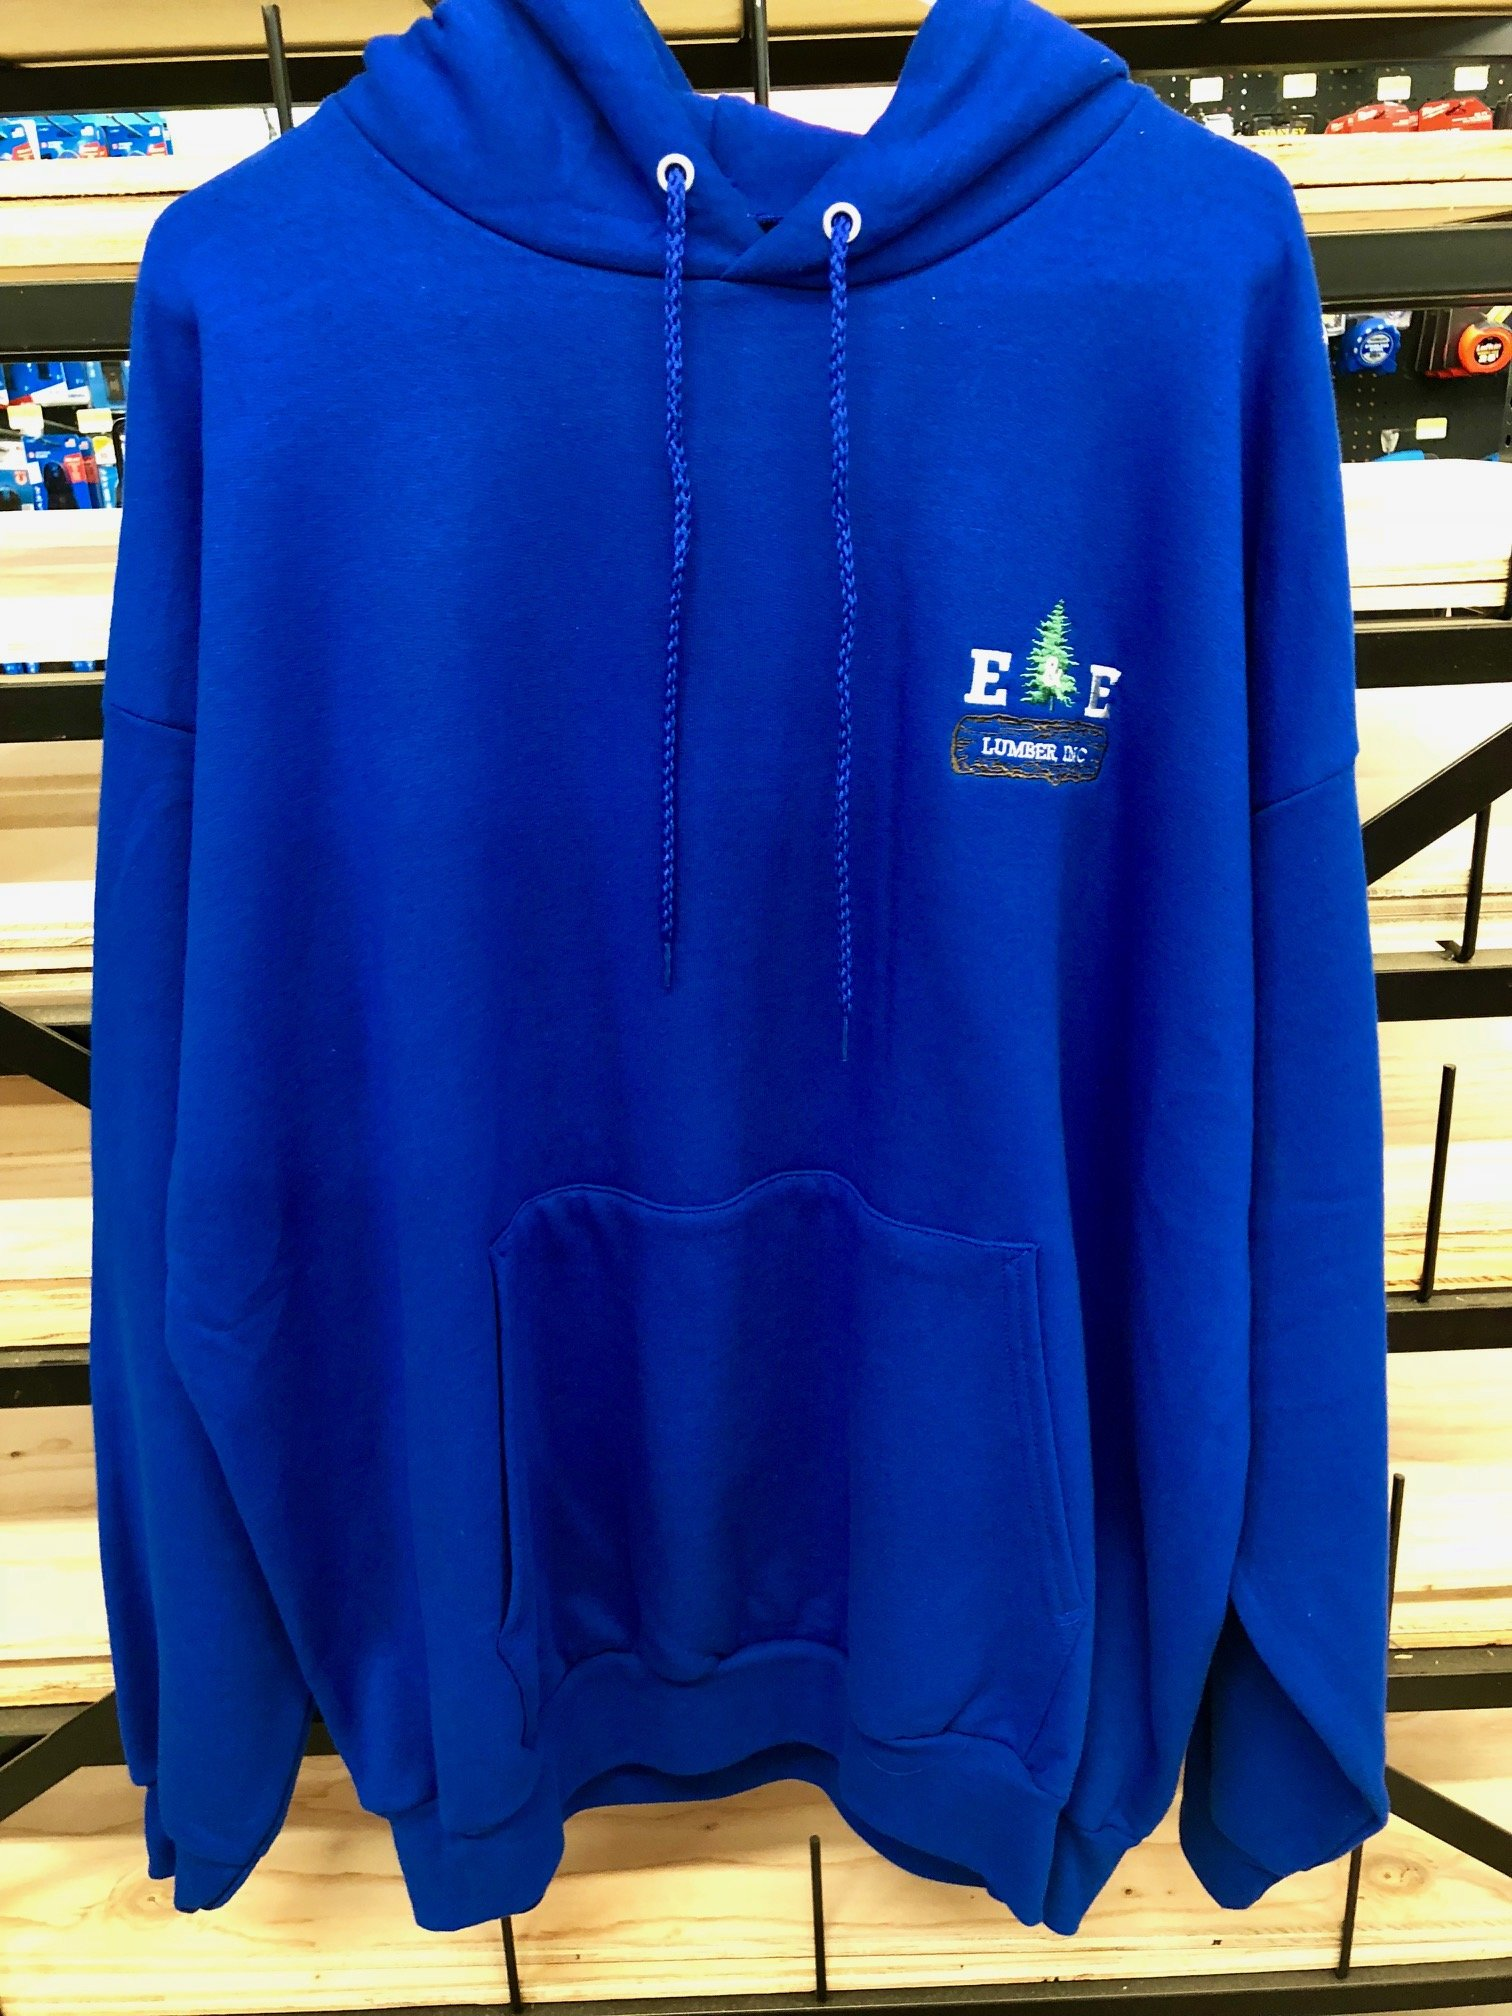 Blue hoodie hanging on a rack